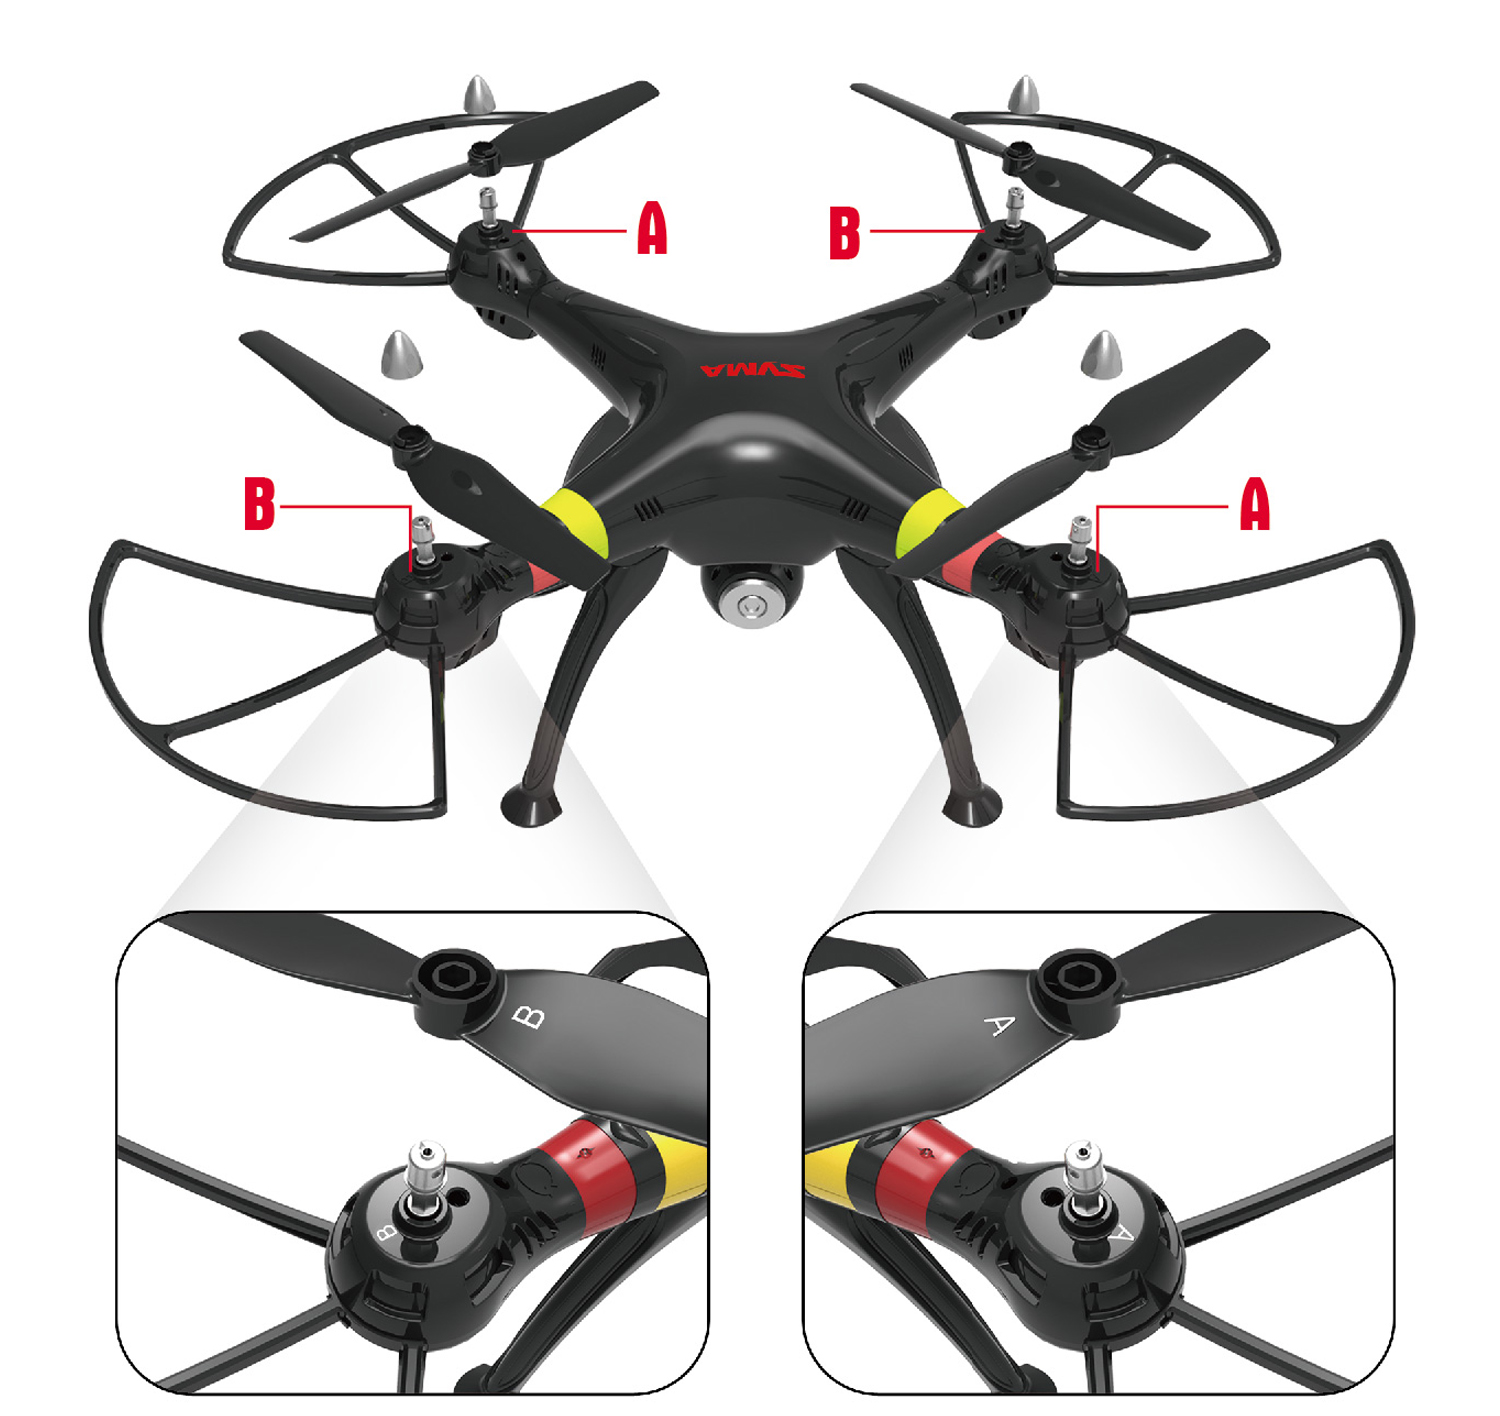 Cheerwing Black Syma X8w Fpv 24ghz 4ch Large Headless Rc Quadcopter X8c Venture With 2 Mp Full Hd Camera White Drone